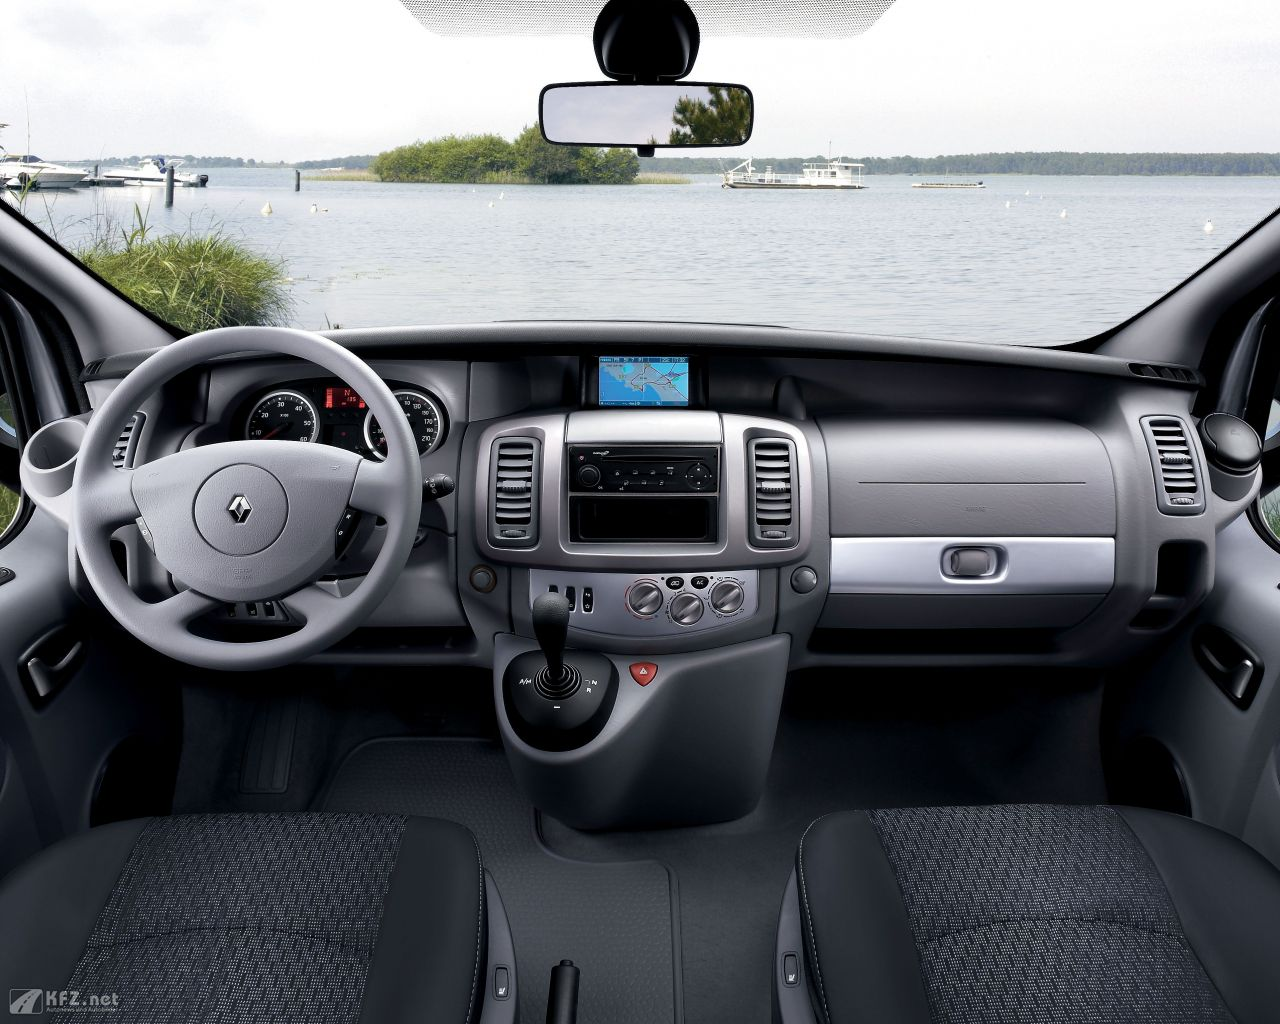 renault-trafic-1280x1024-19